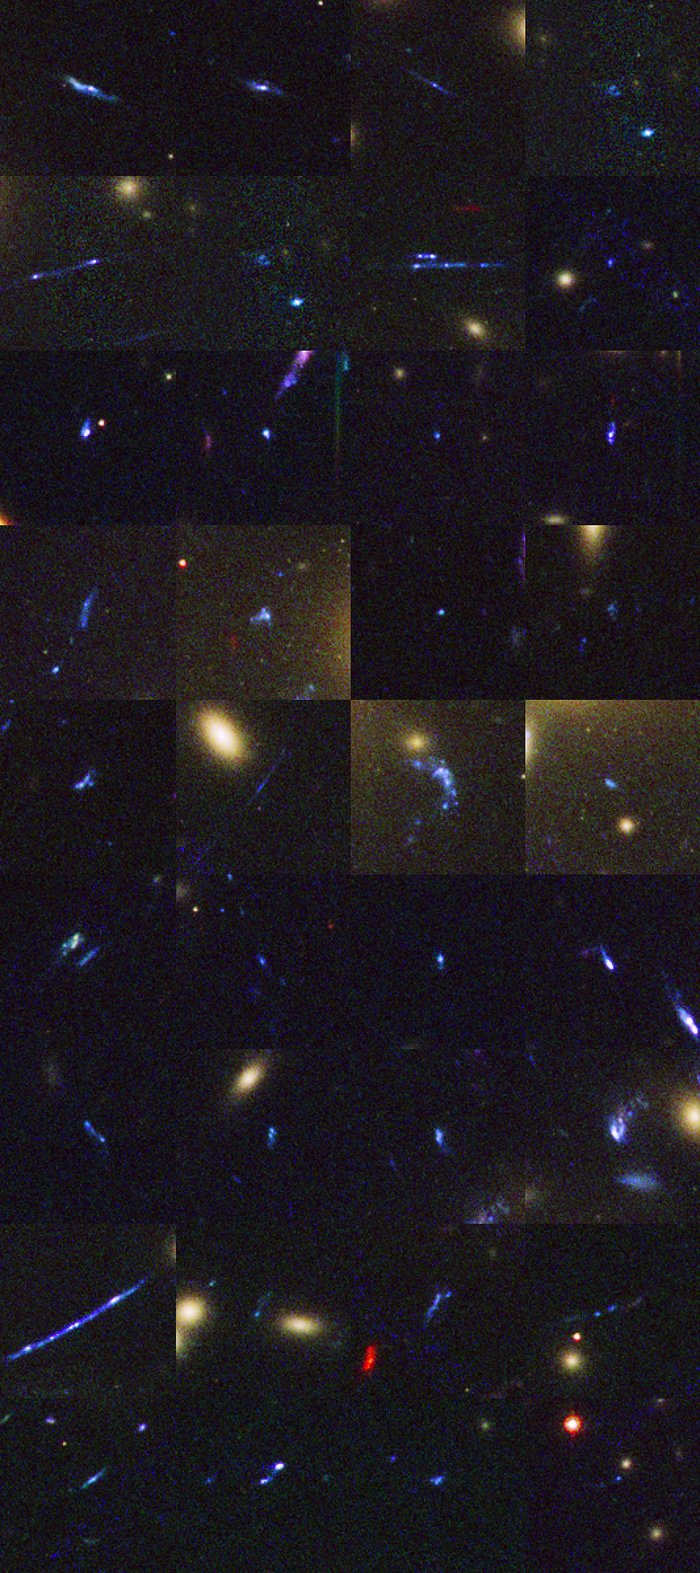 Distant galaxies behind Abell 1689